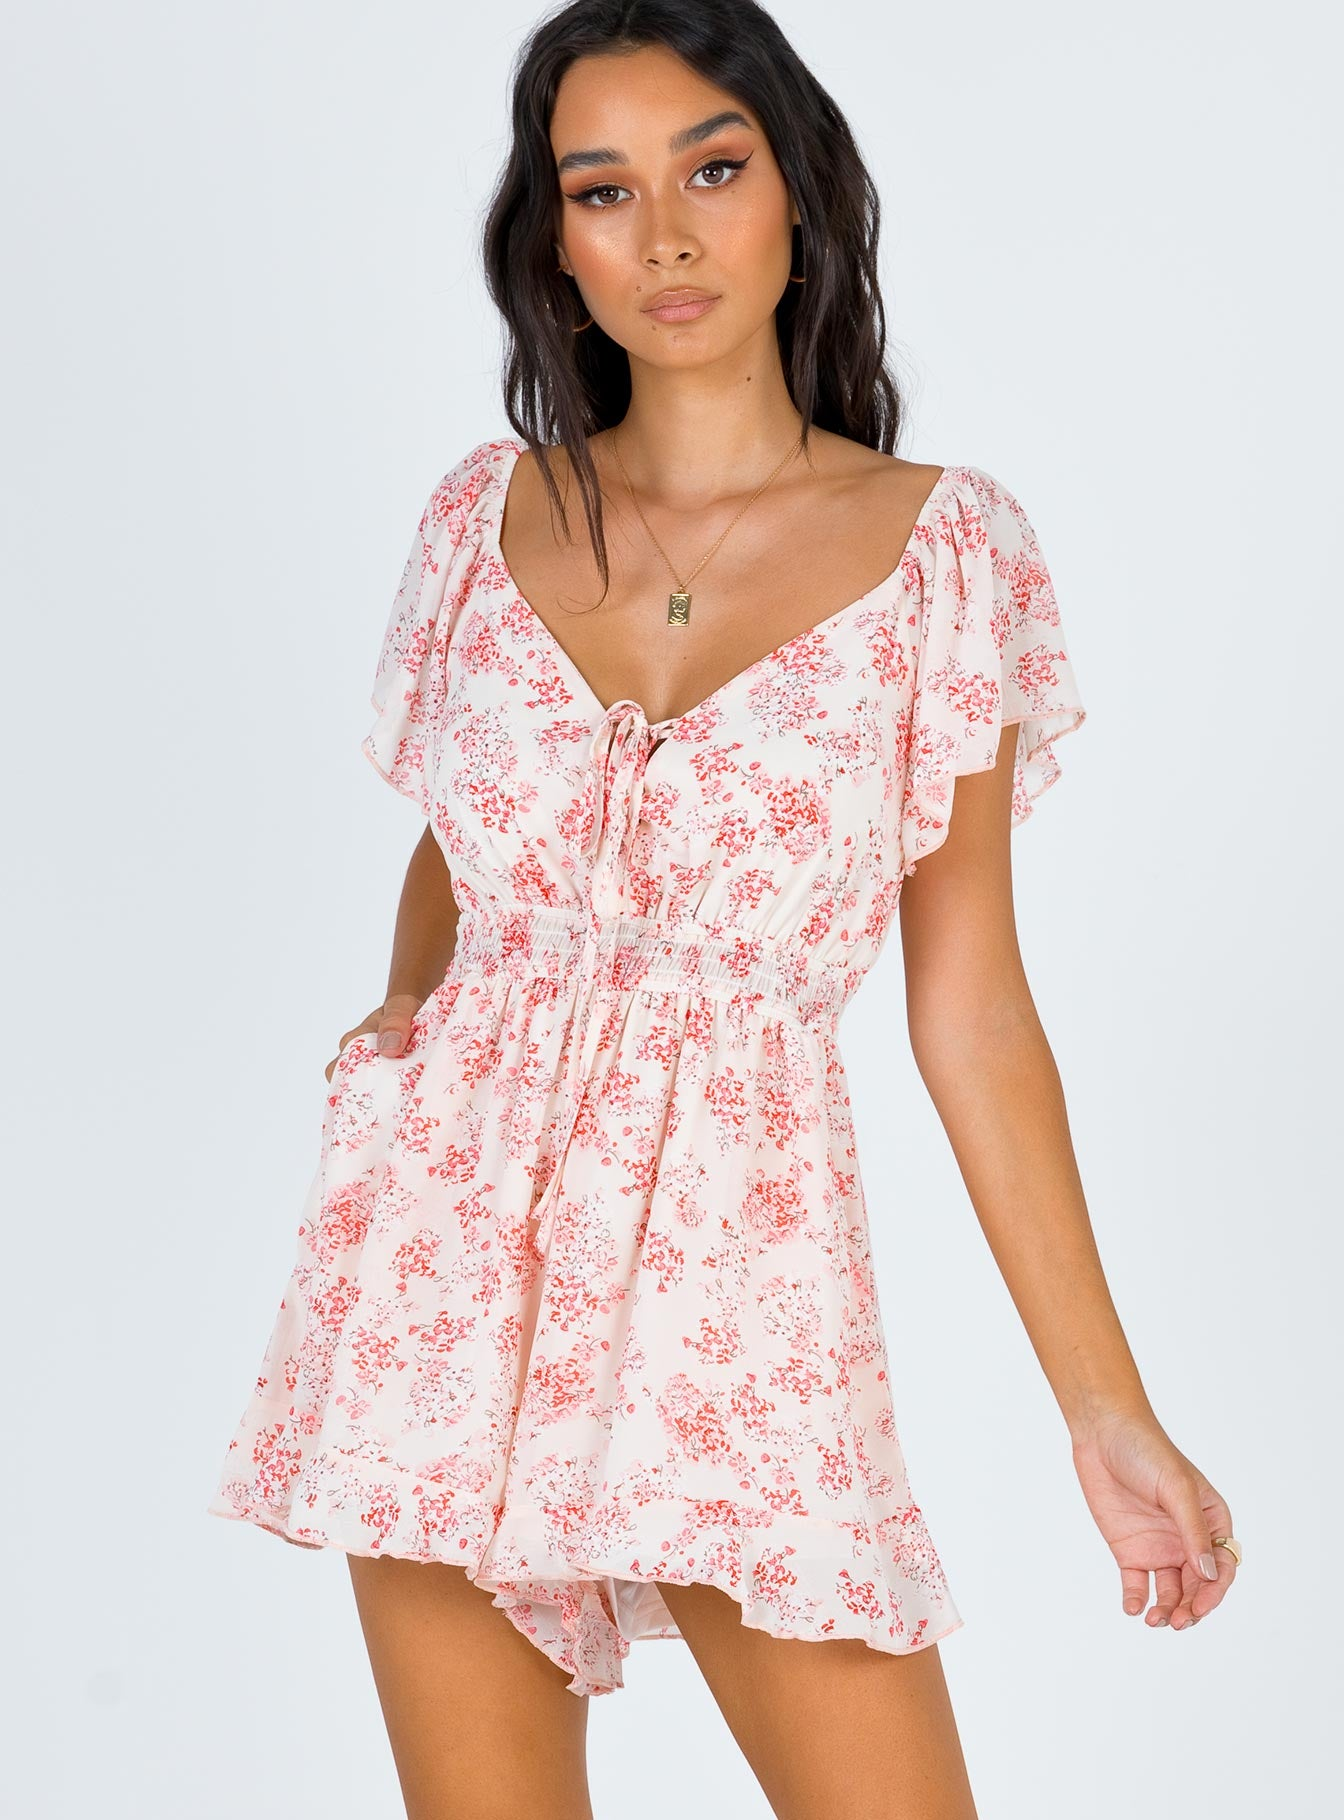 Primie Playsuit